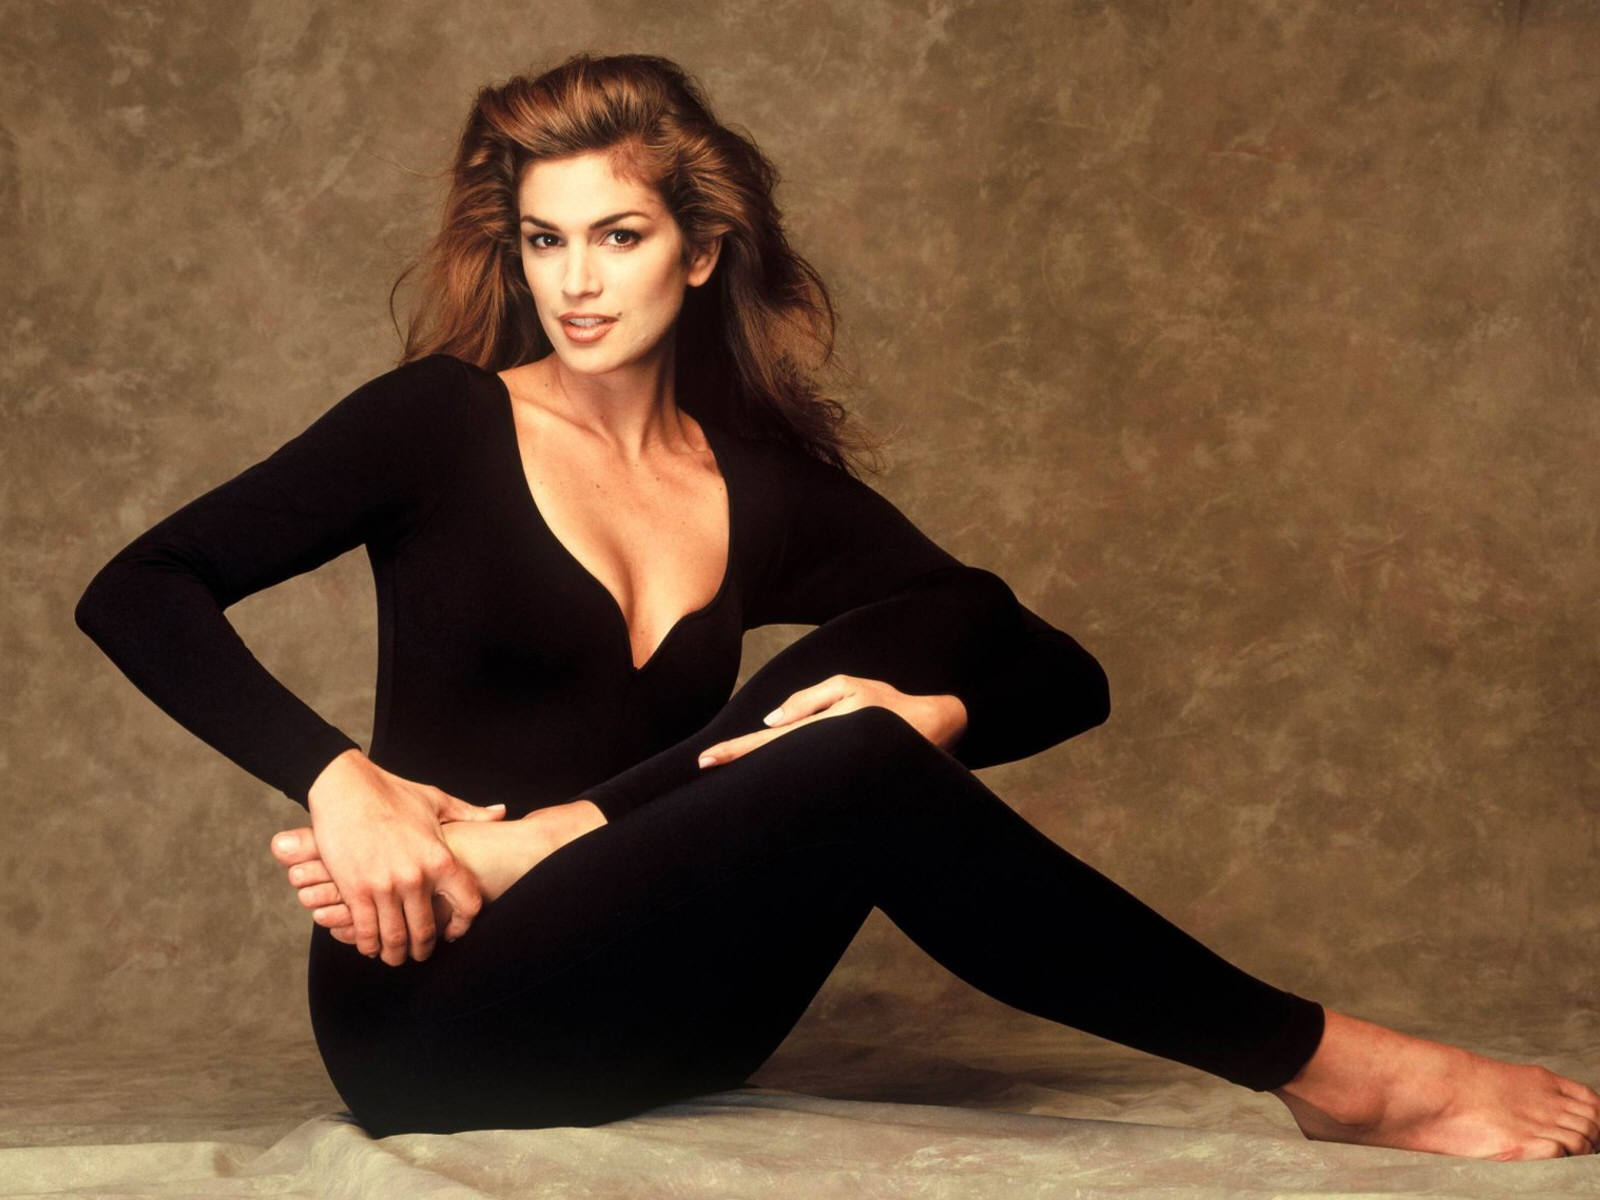 Cindy crawford hot photos-7865